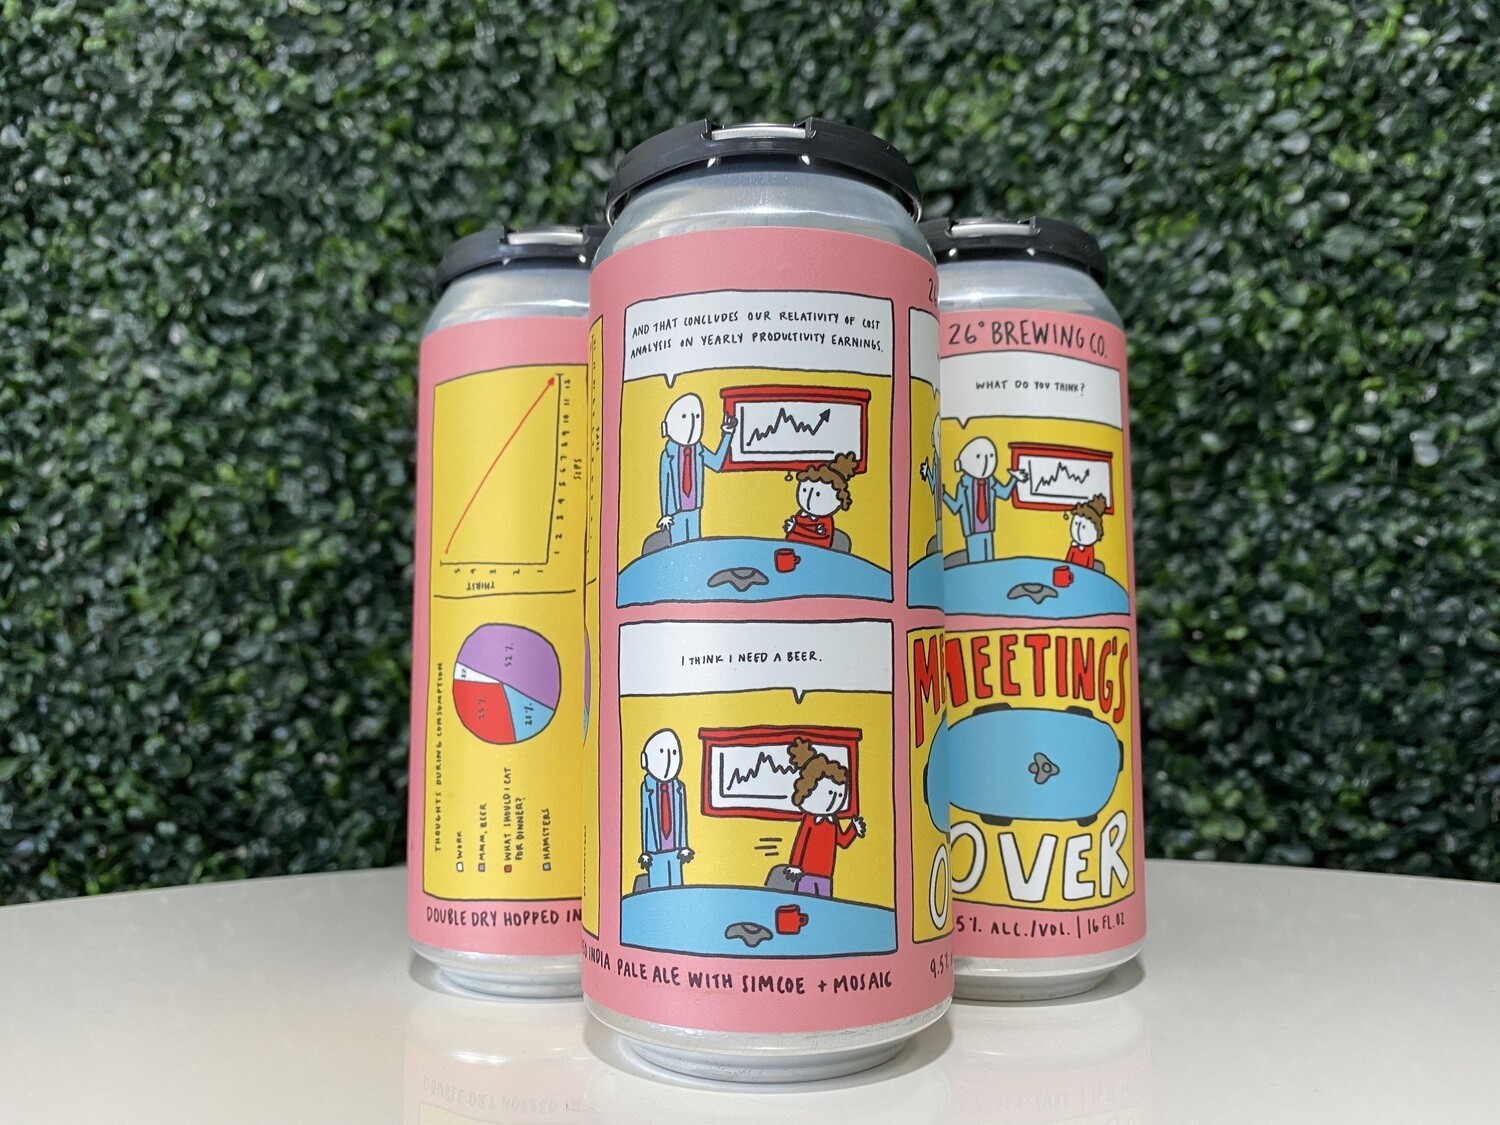 26 Degrees - Meetings Over - Double IPA - 9.7% ABV - 16oz Can